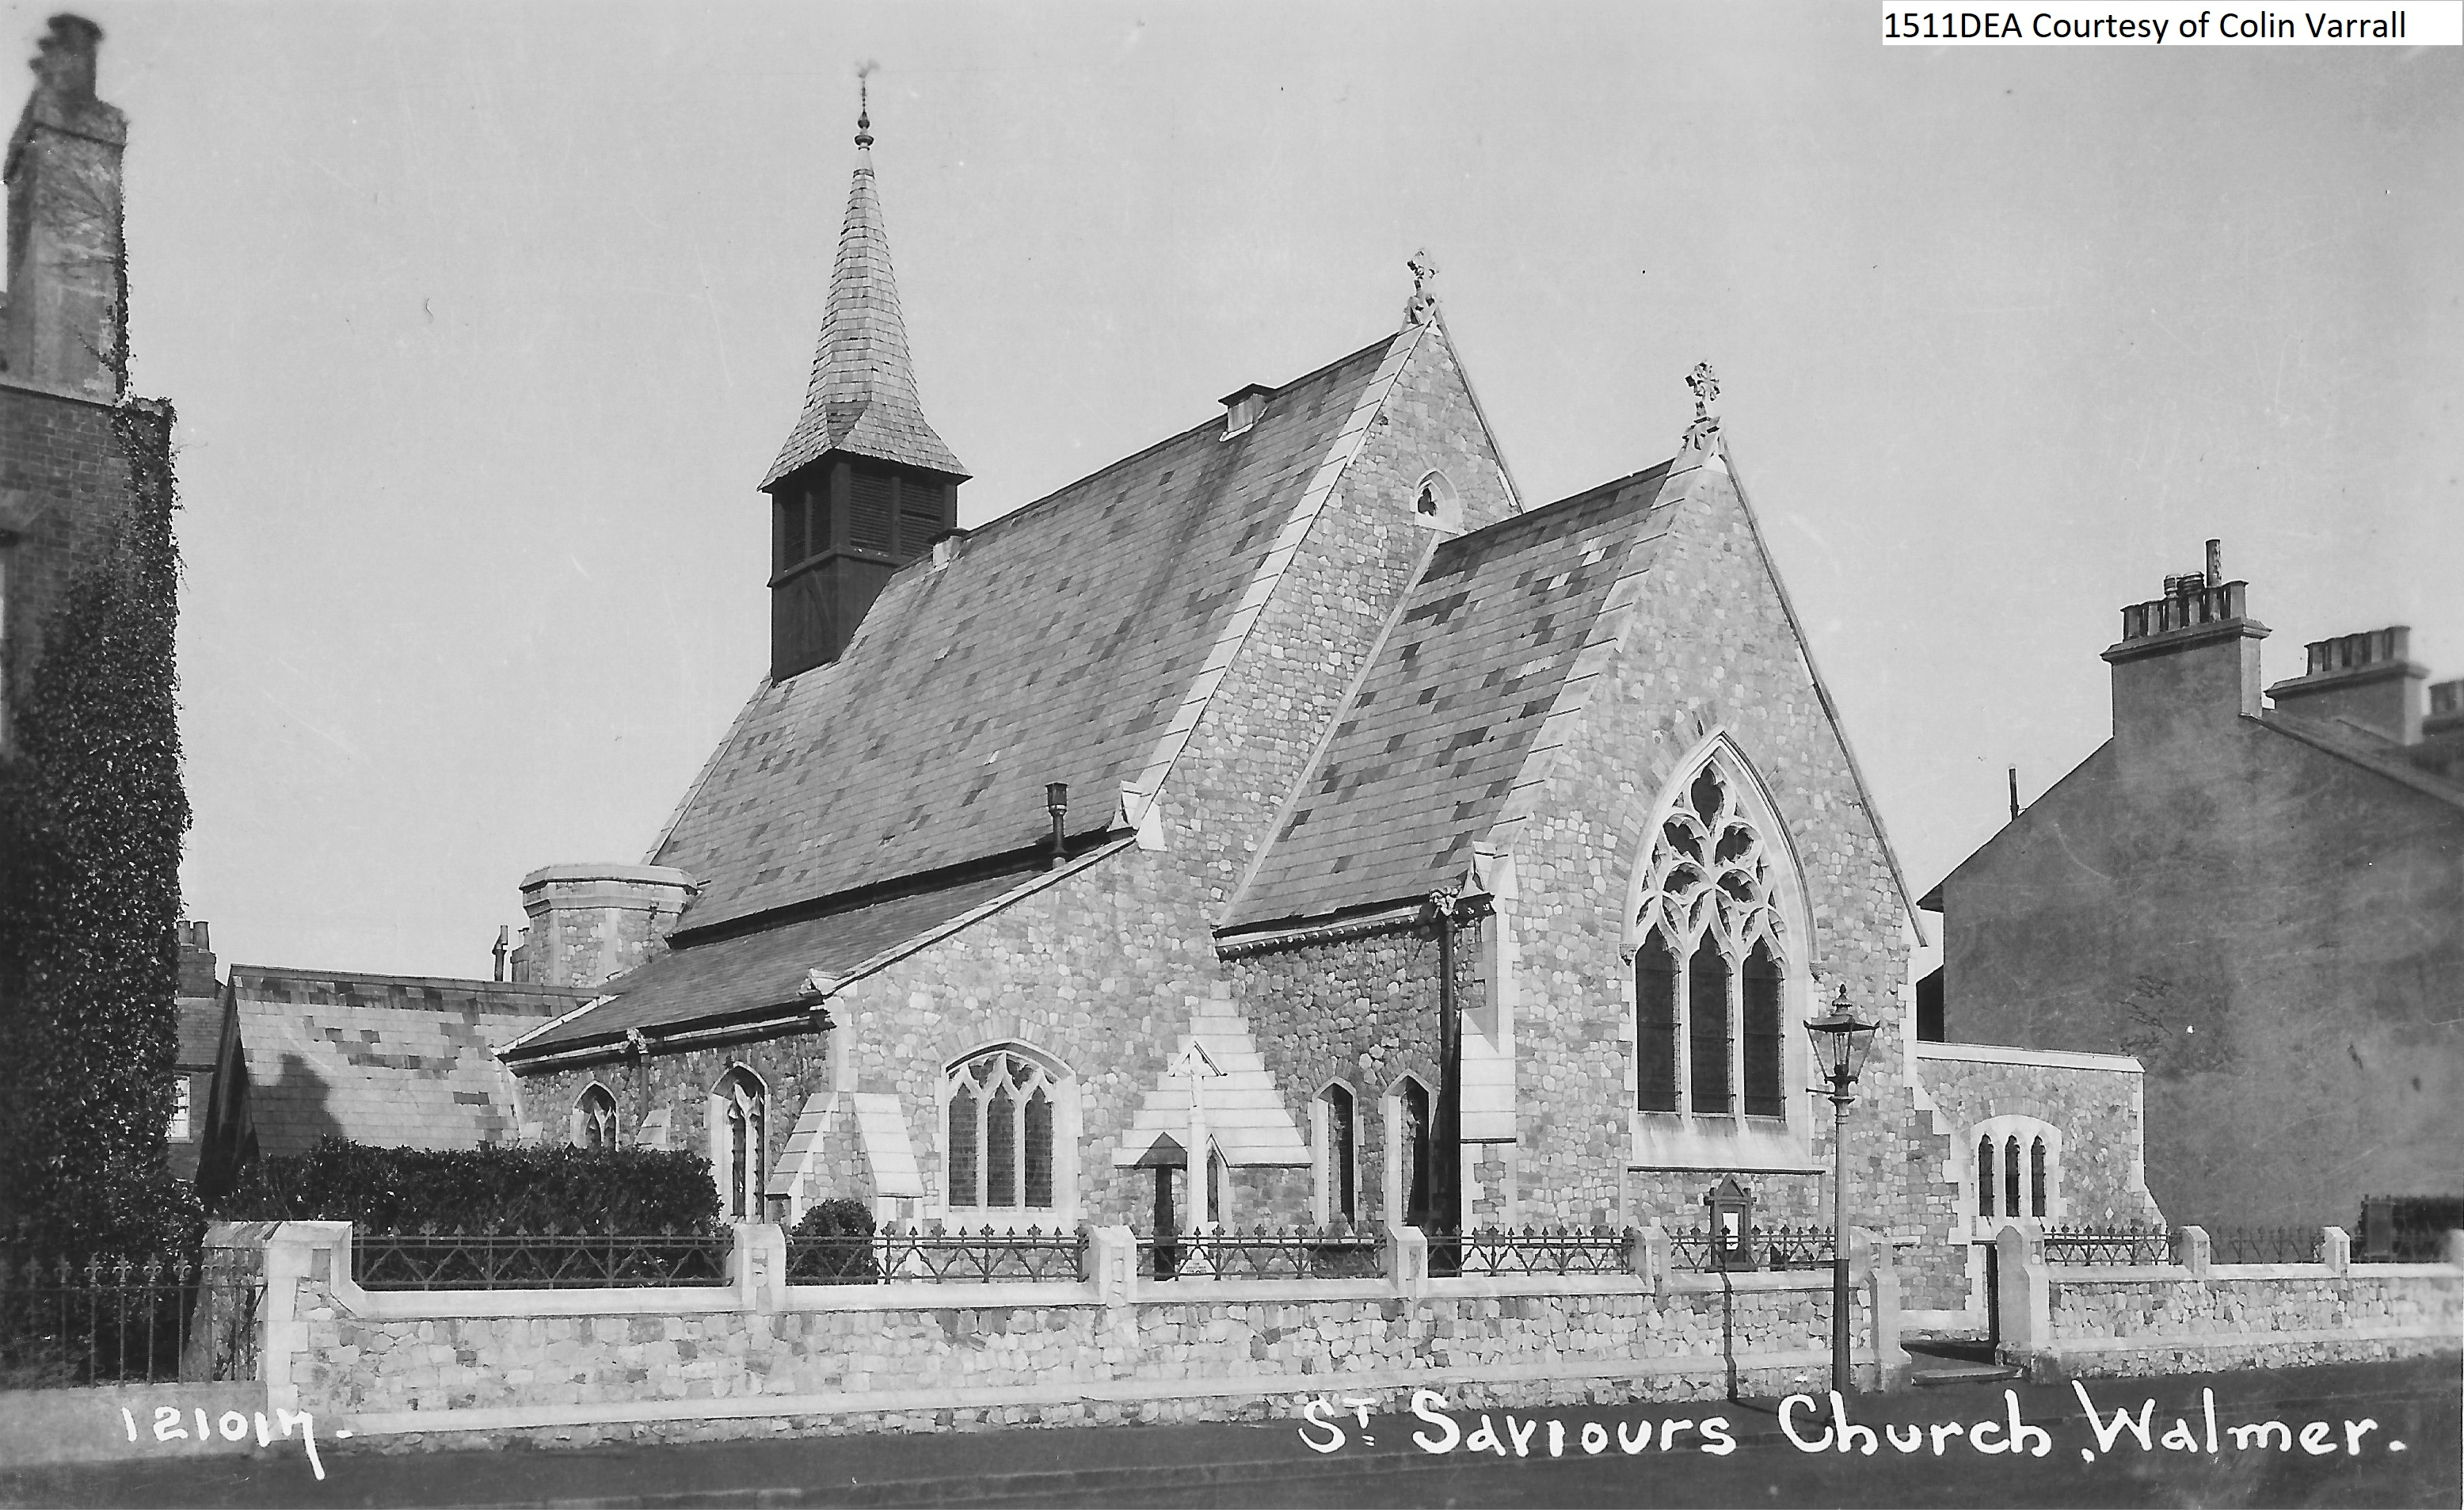 St Saviours Church Walmer